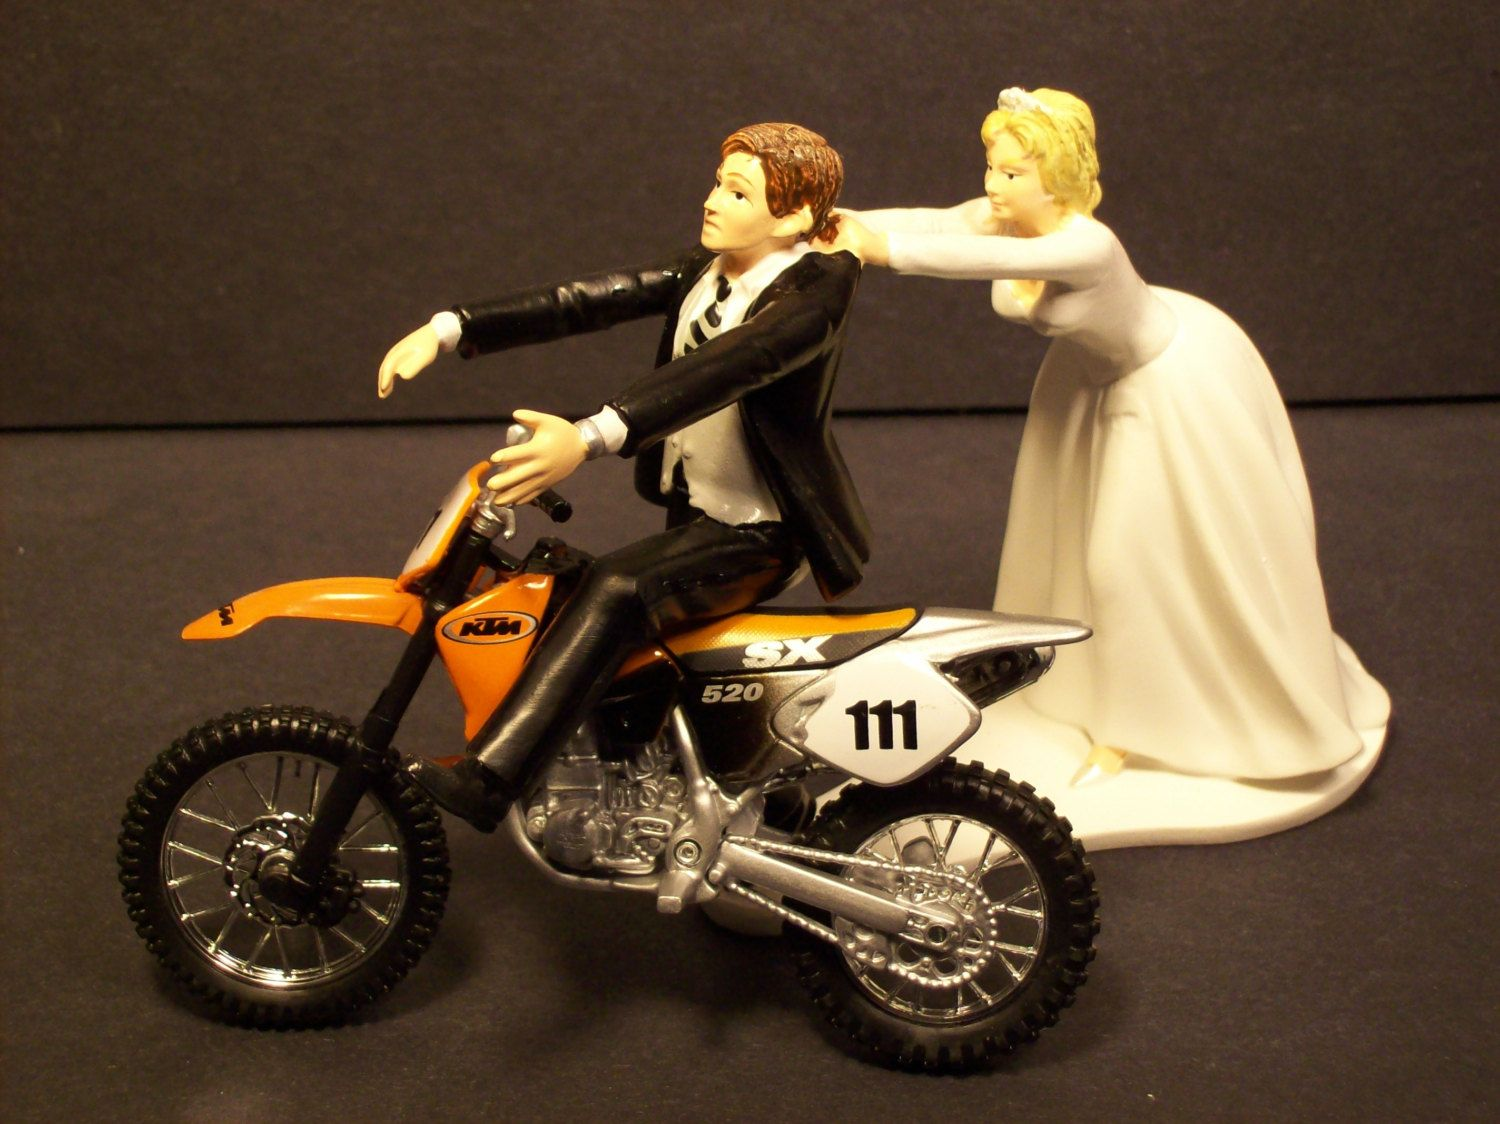 hight resolution of come back motorcycle ktm orange 520 sx dirt bike bride and groom funny bike wedding cake topper 67 99 via etsy